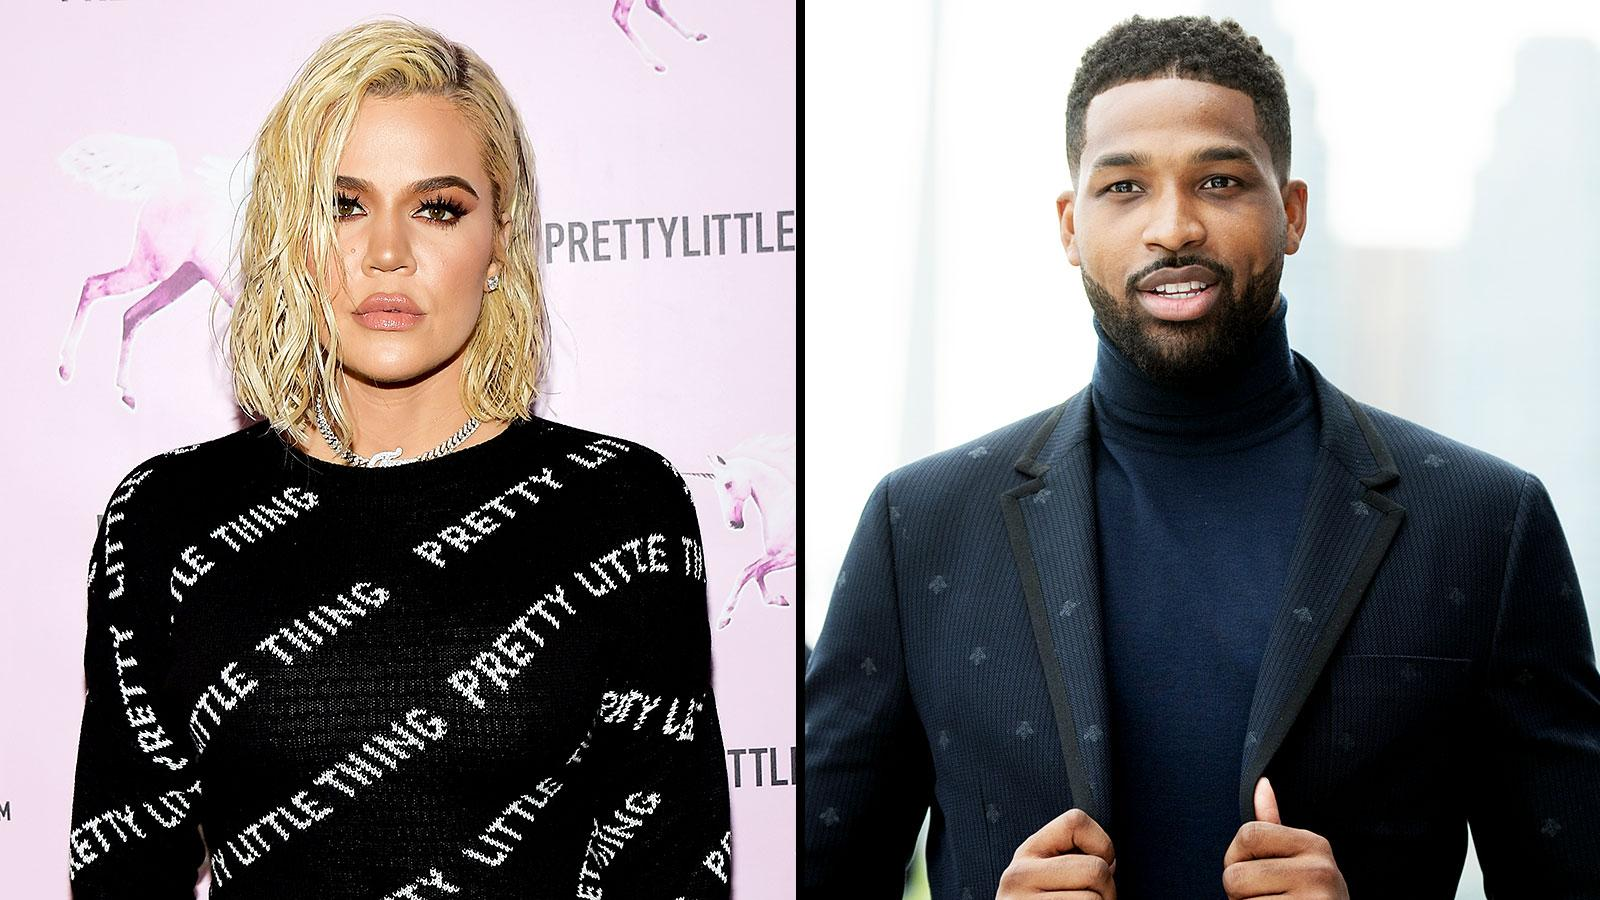 KUWK: Khloe Kardashian 'Hurt' After Seeing Sweet Post Of Tristan With His Son - He's Never There For True